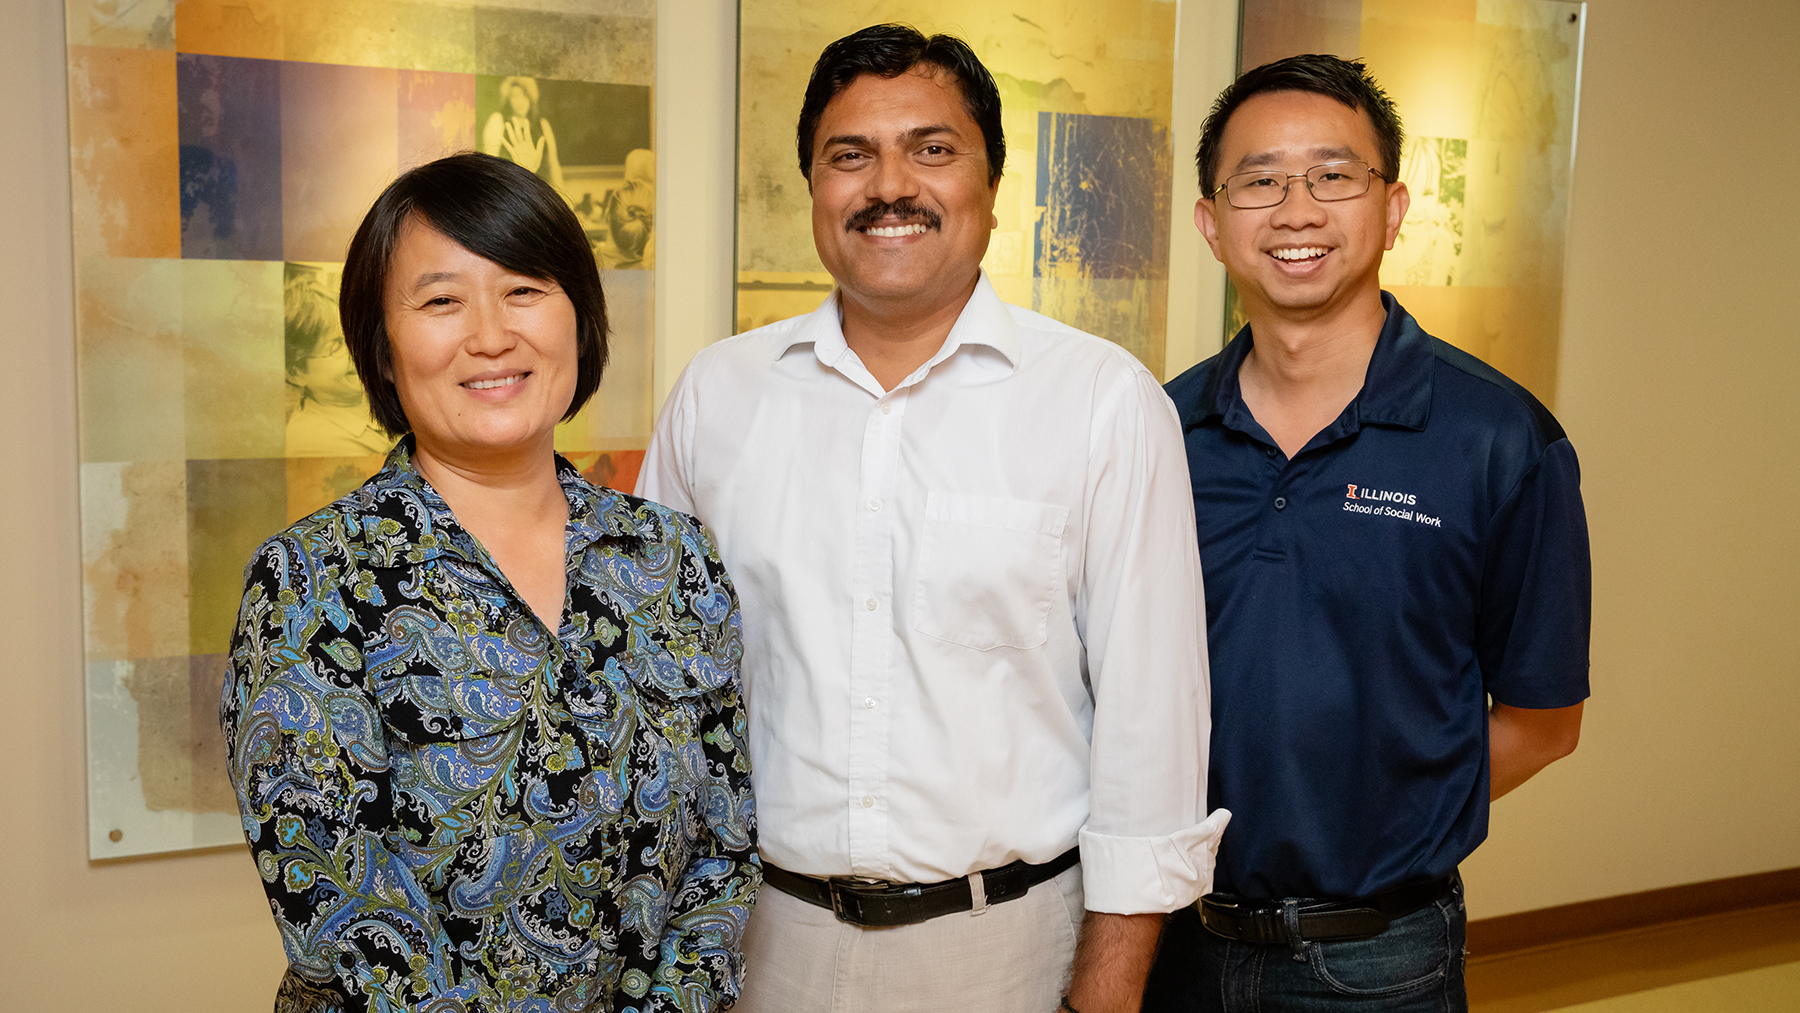 Illinois graduate student Gaurav Sinha conducted the study. Social work professors Min Zhan and Kevin Tan co-wrote the paper. Group photo by L. Brian Stauffer